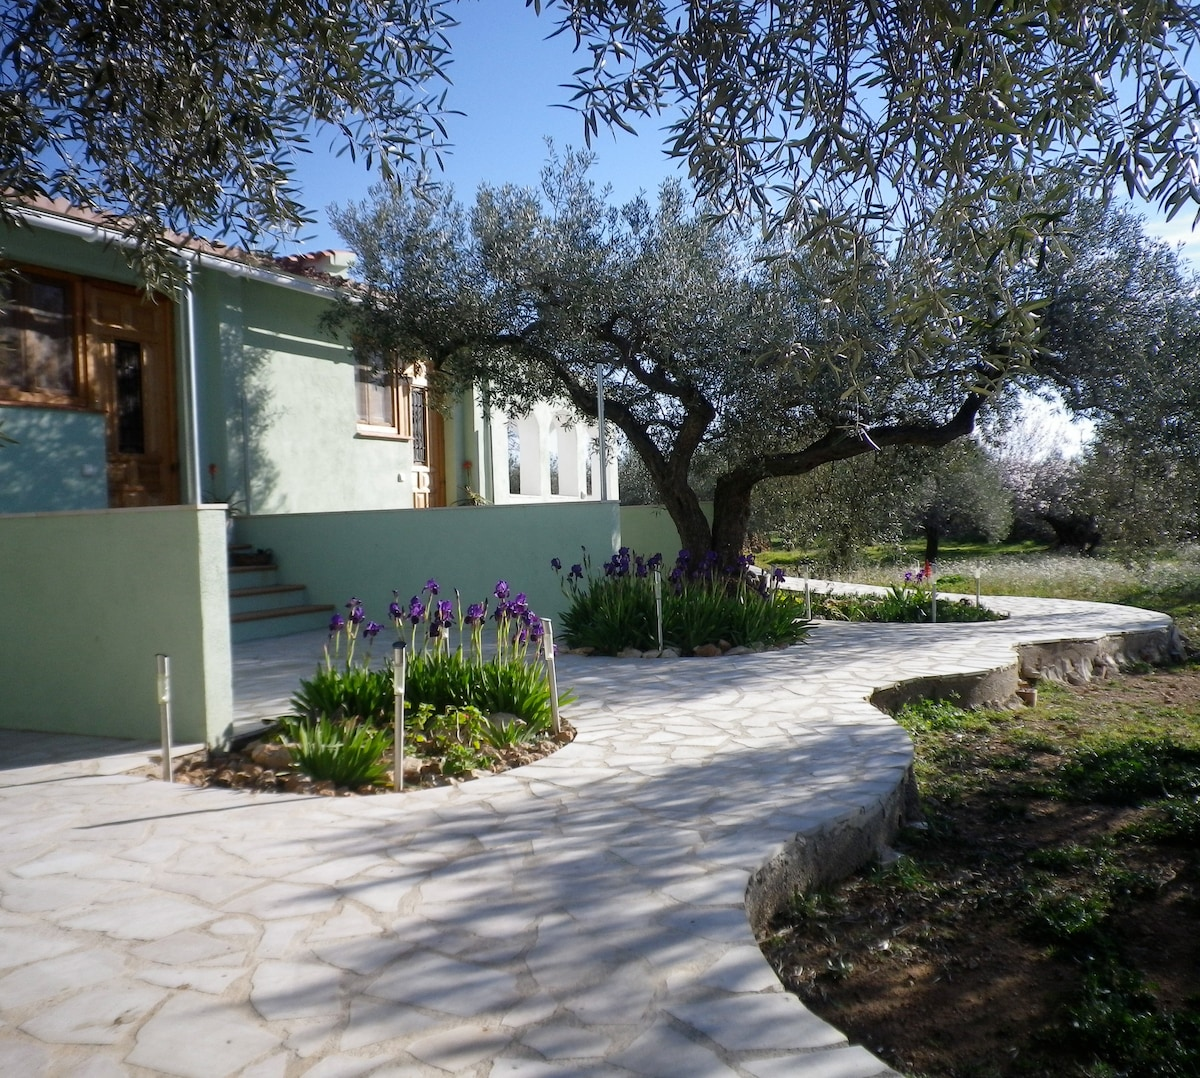 Looking down the path to some of the olives.